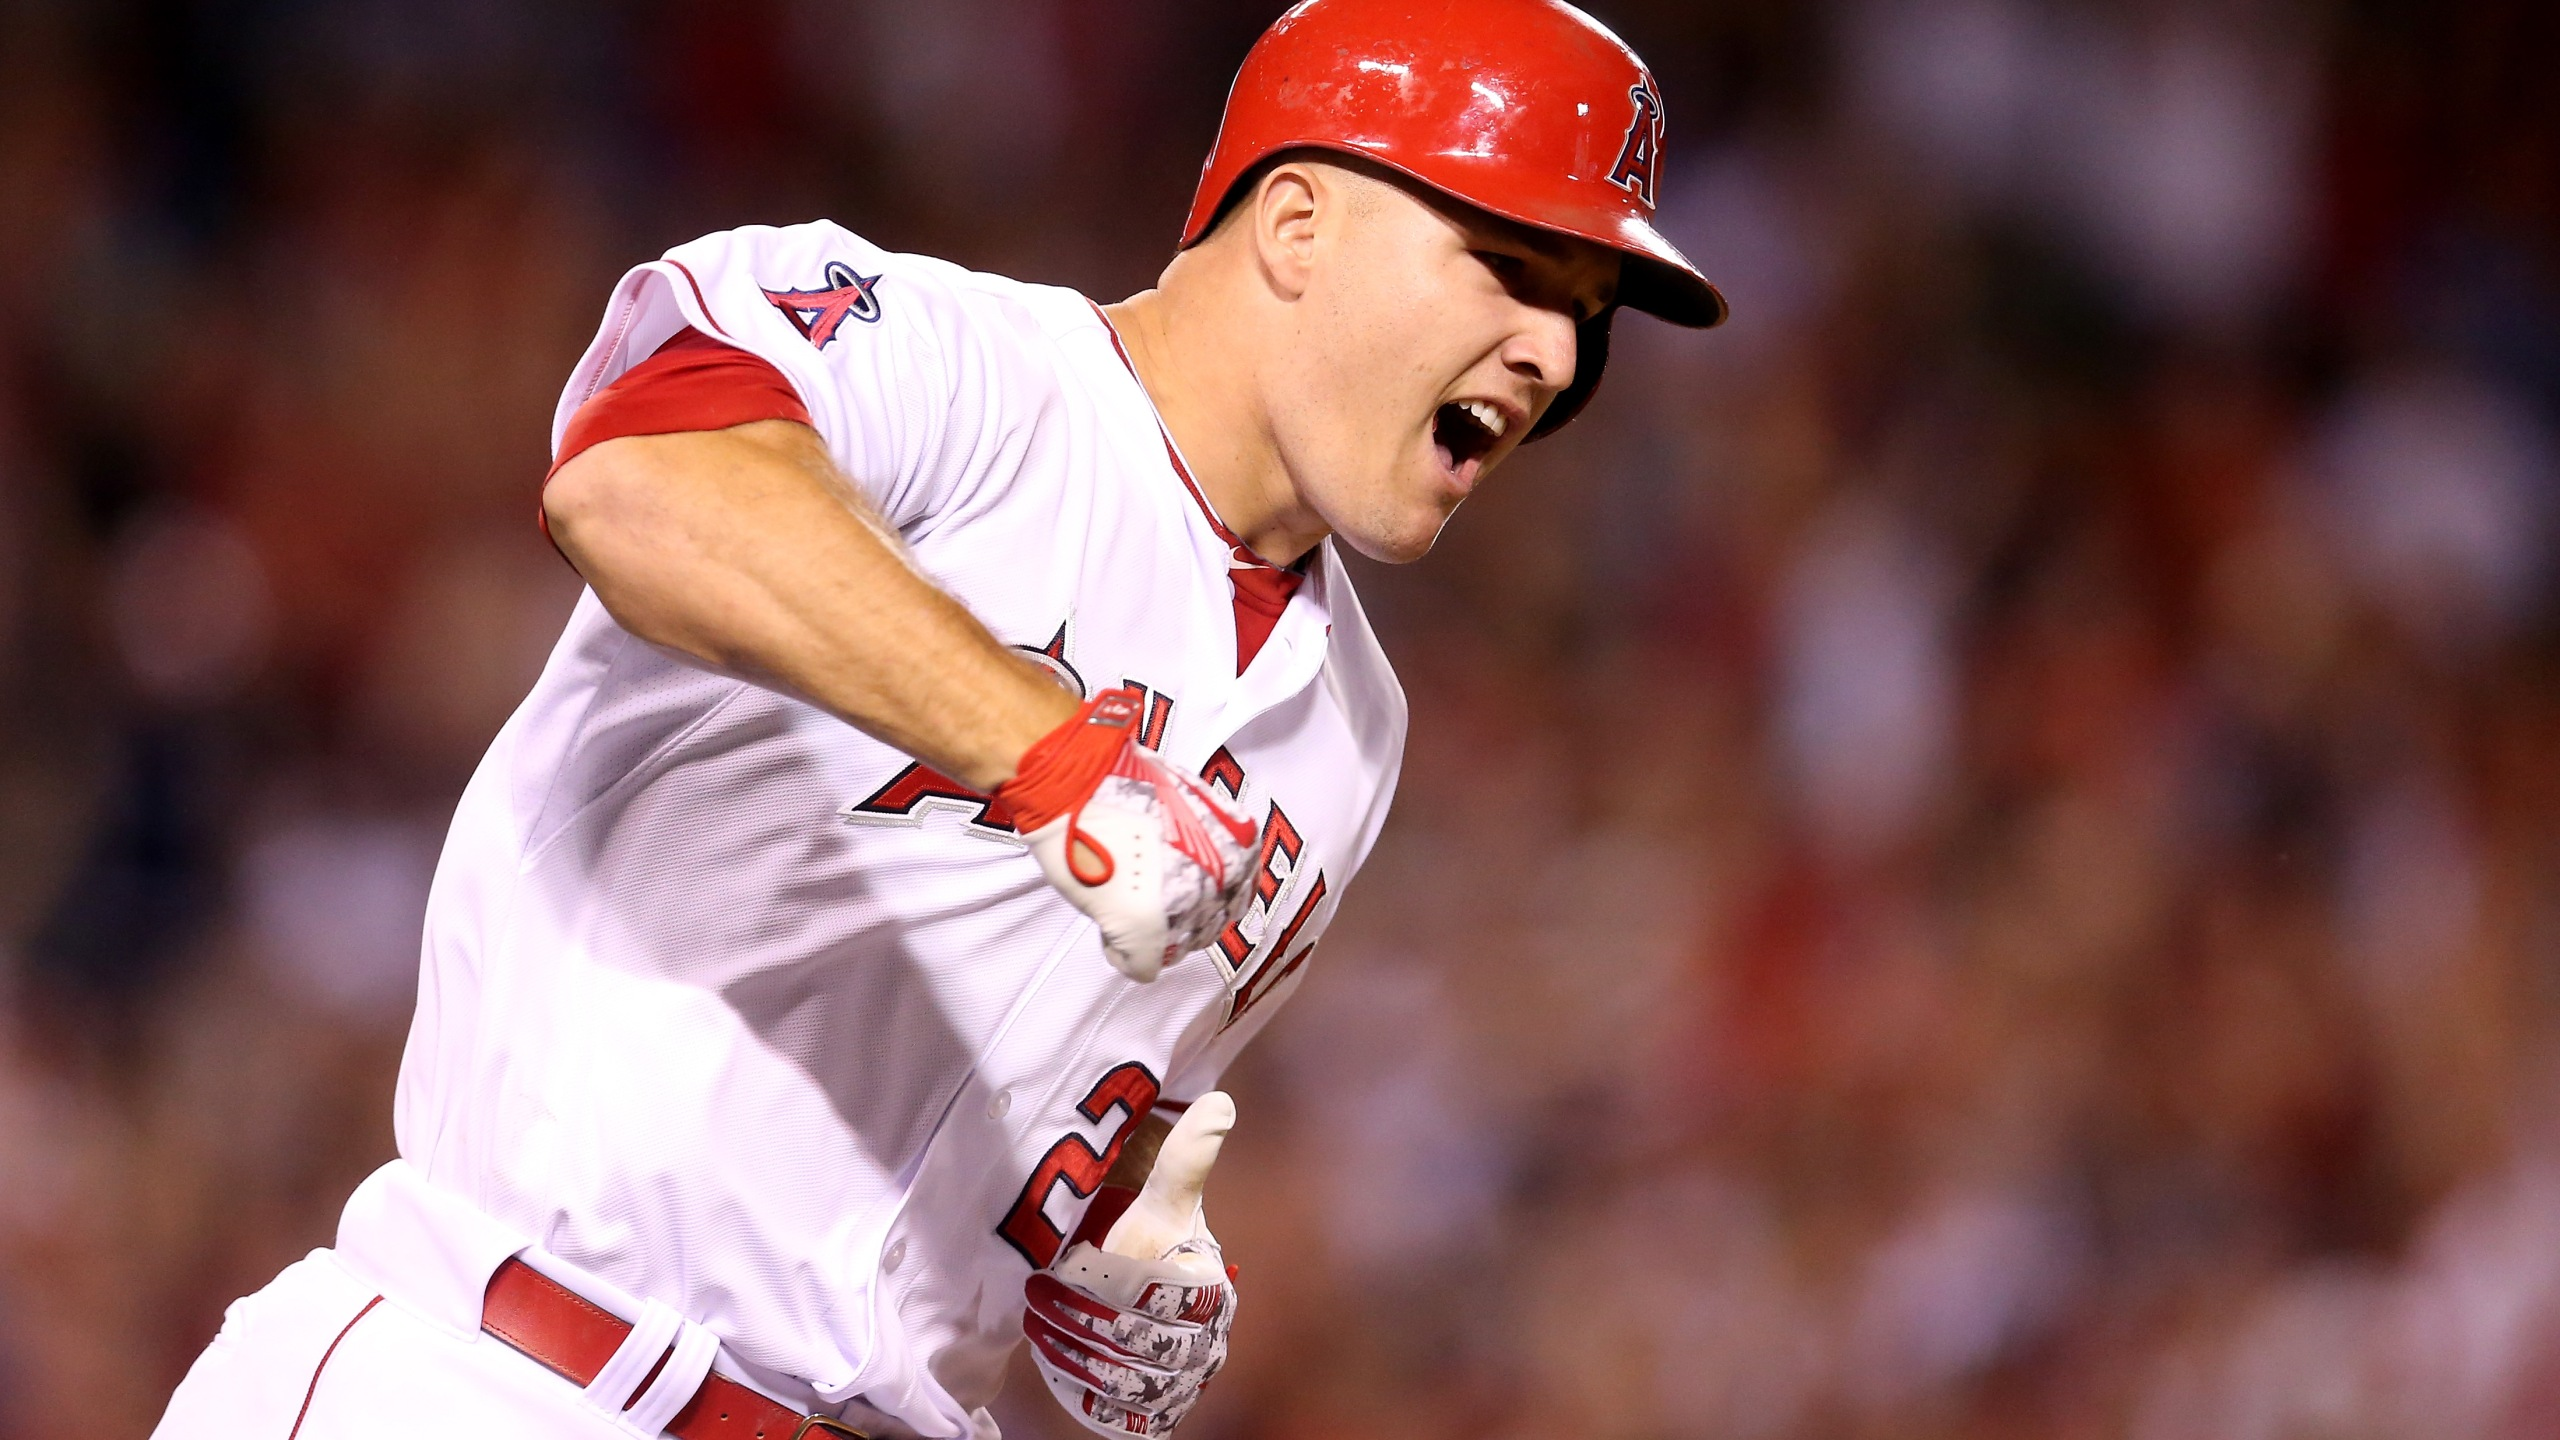 Mike Trout #27 of the Los Angeles Angels of Anaheim reacts as he runs to first as his walk off home run clears the wall in the ninth inning against the Boston Red Sox at Angel Stadium of Anaheim on July 17, 2015 in Anaheim, California. (Credit: Stephen Dunn/Getty Images)